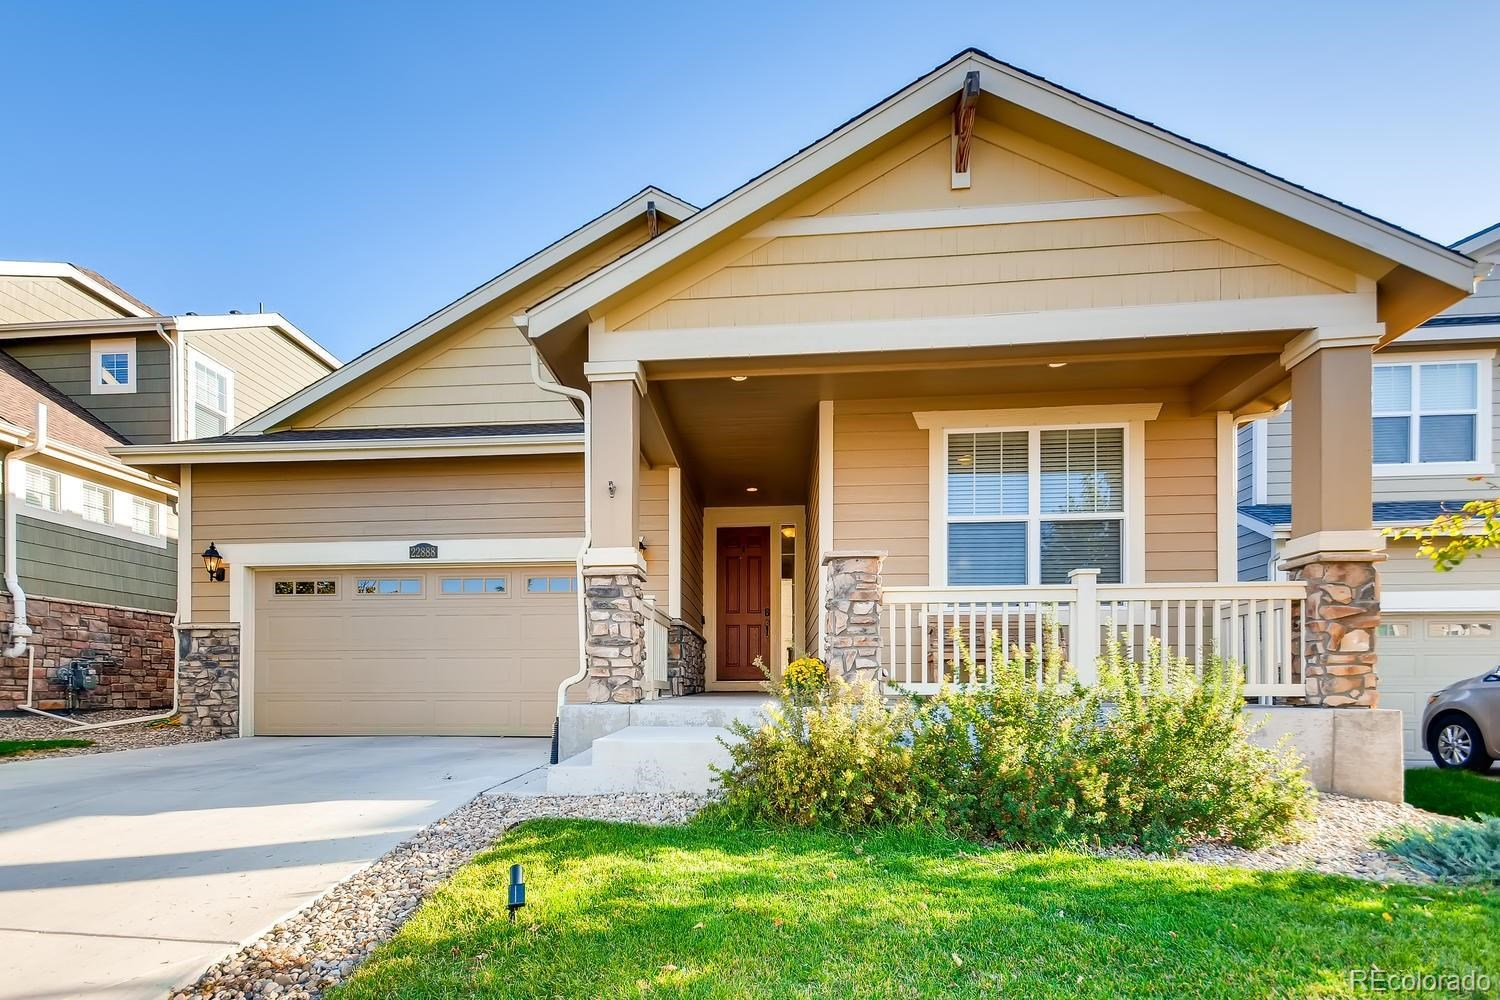 MLS# 9346696 - 1 - 22888 E Saratoga Place, Aurora, CO 80015